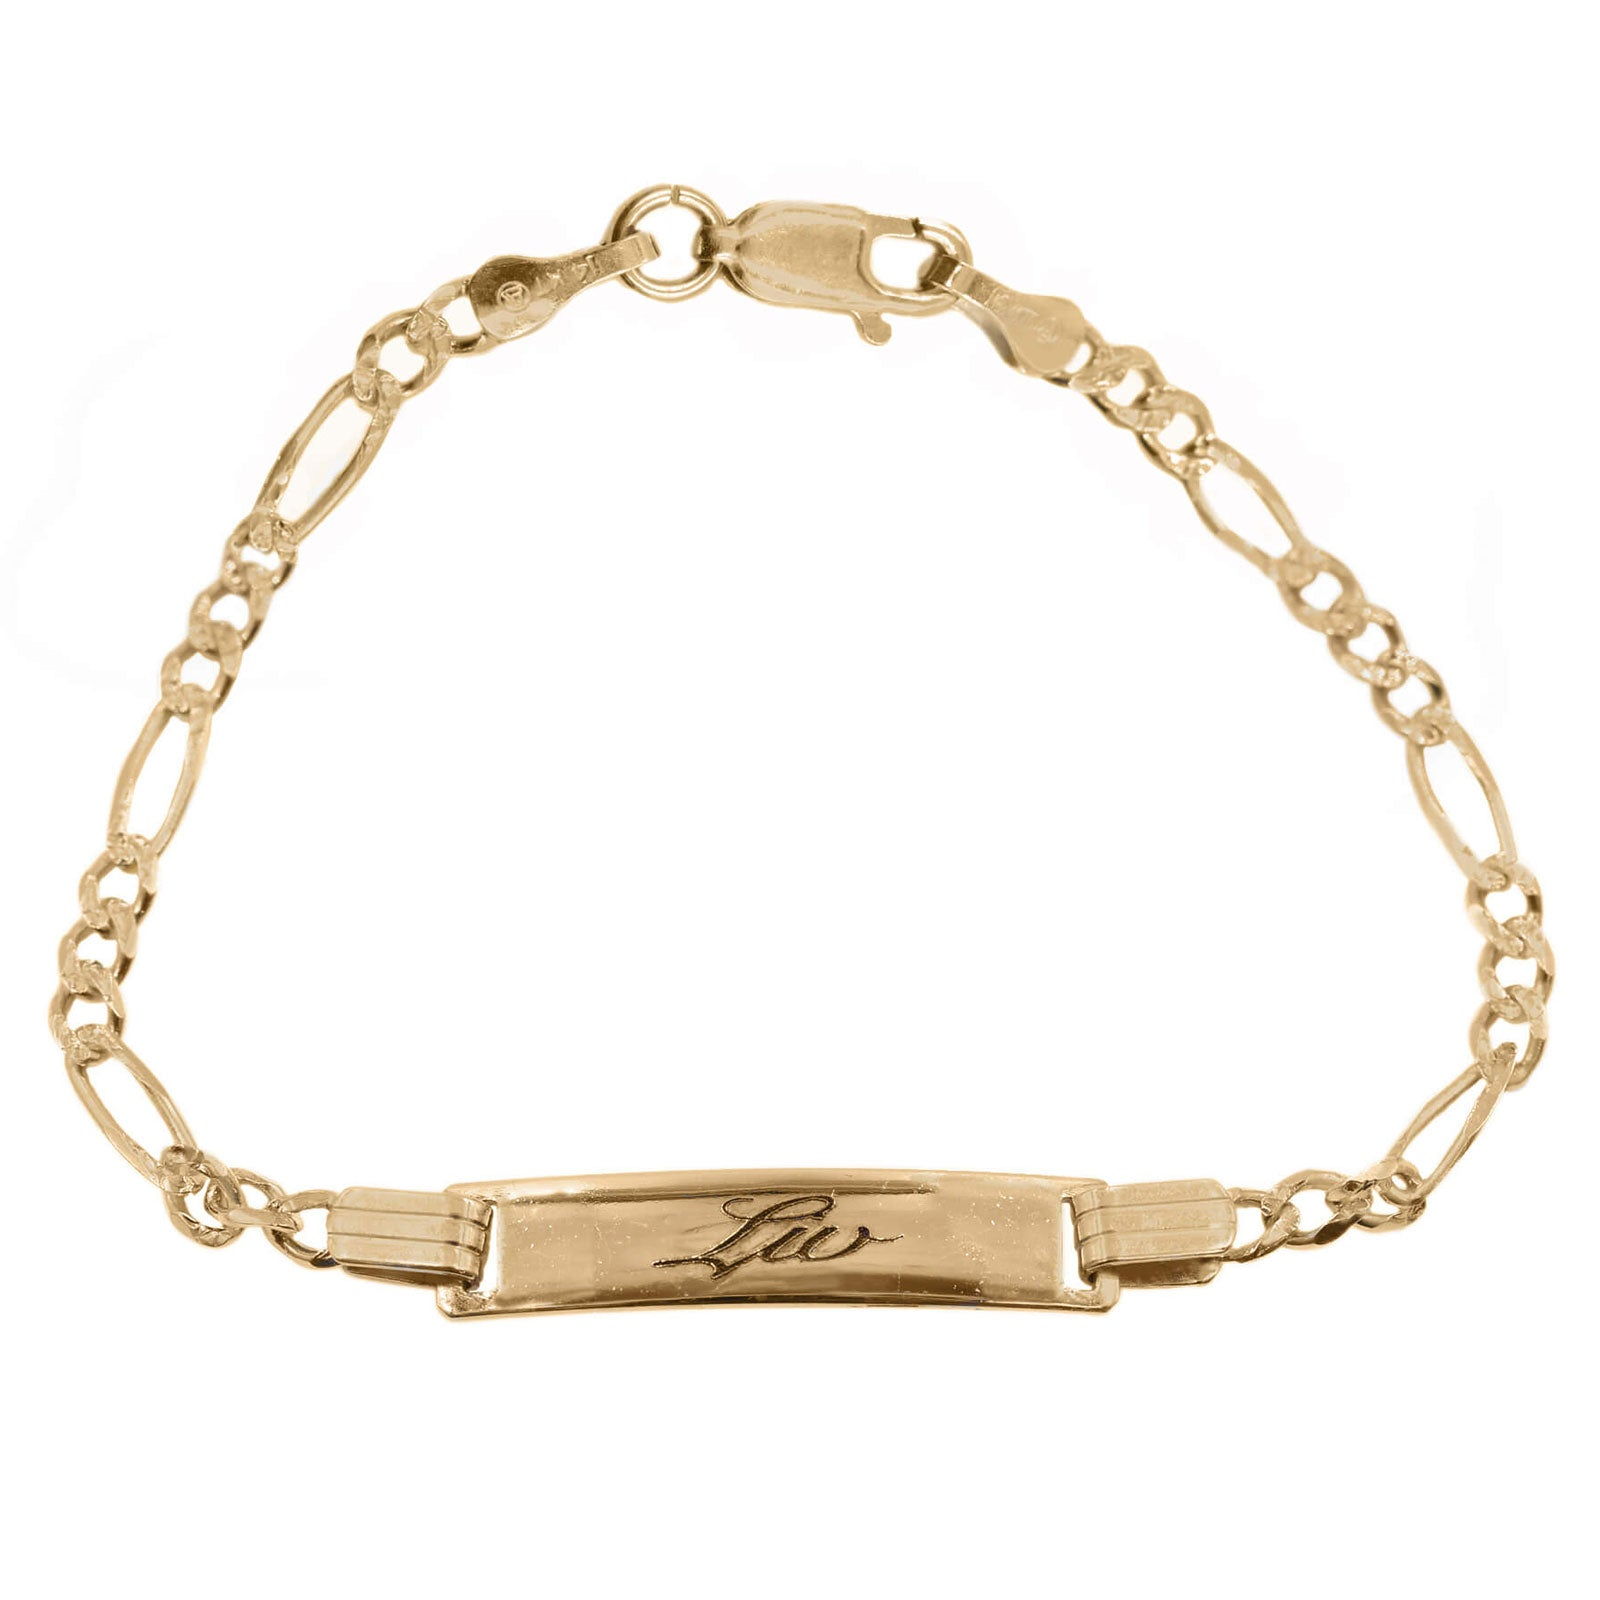 Custom Baby ID Bracelet in 14K Solid Gold